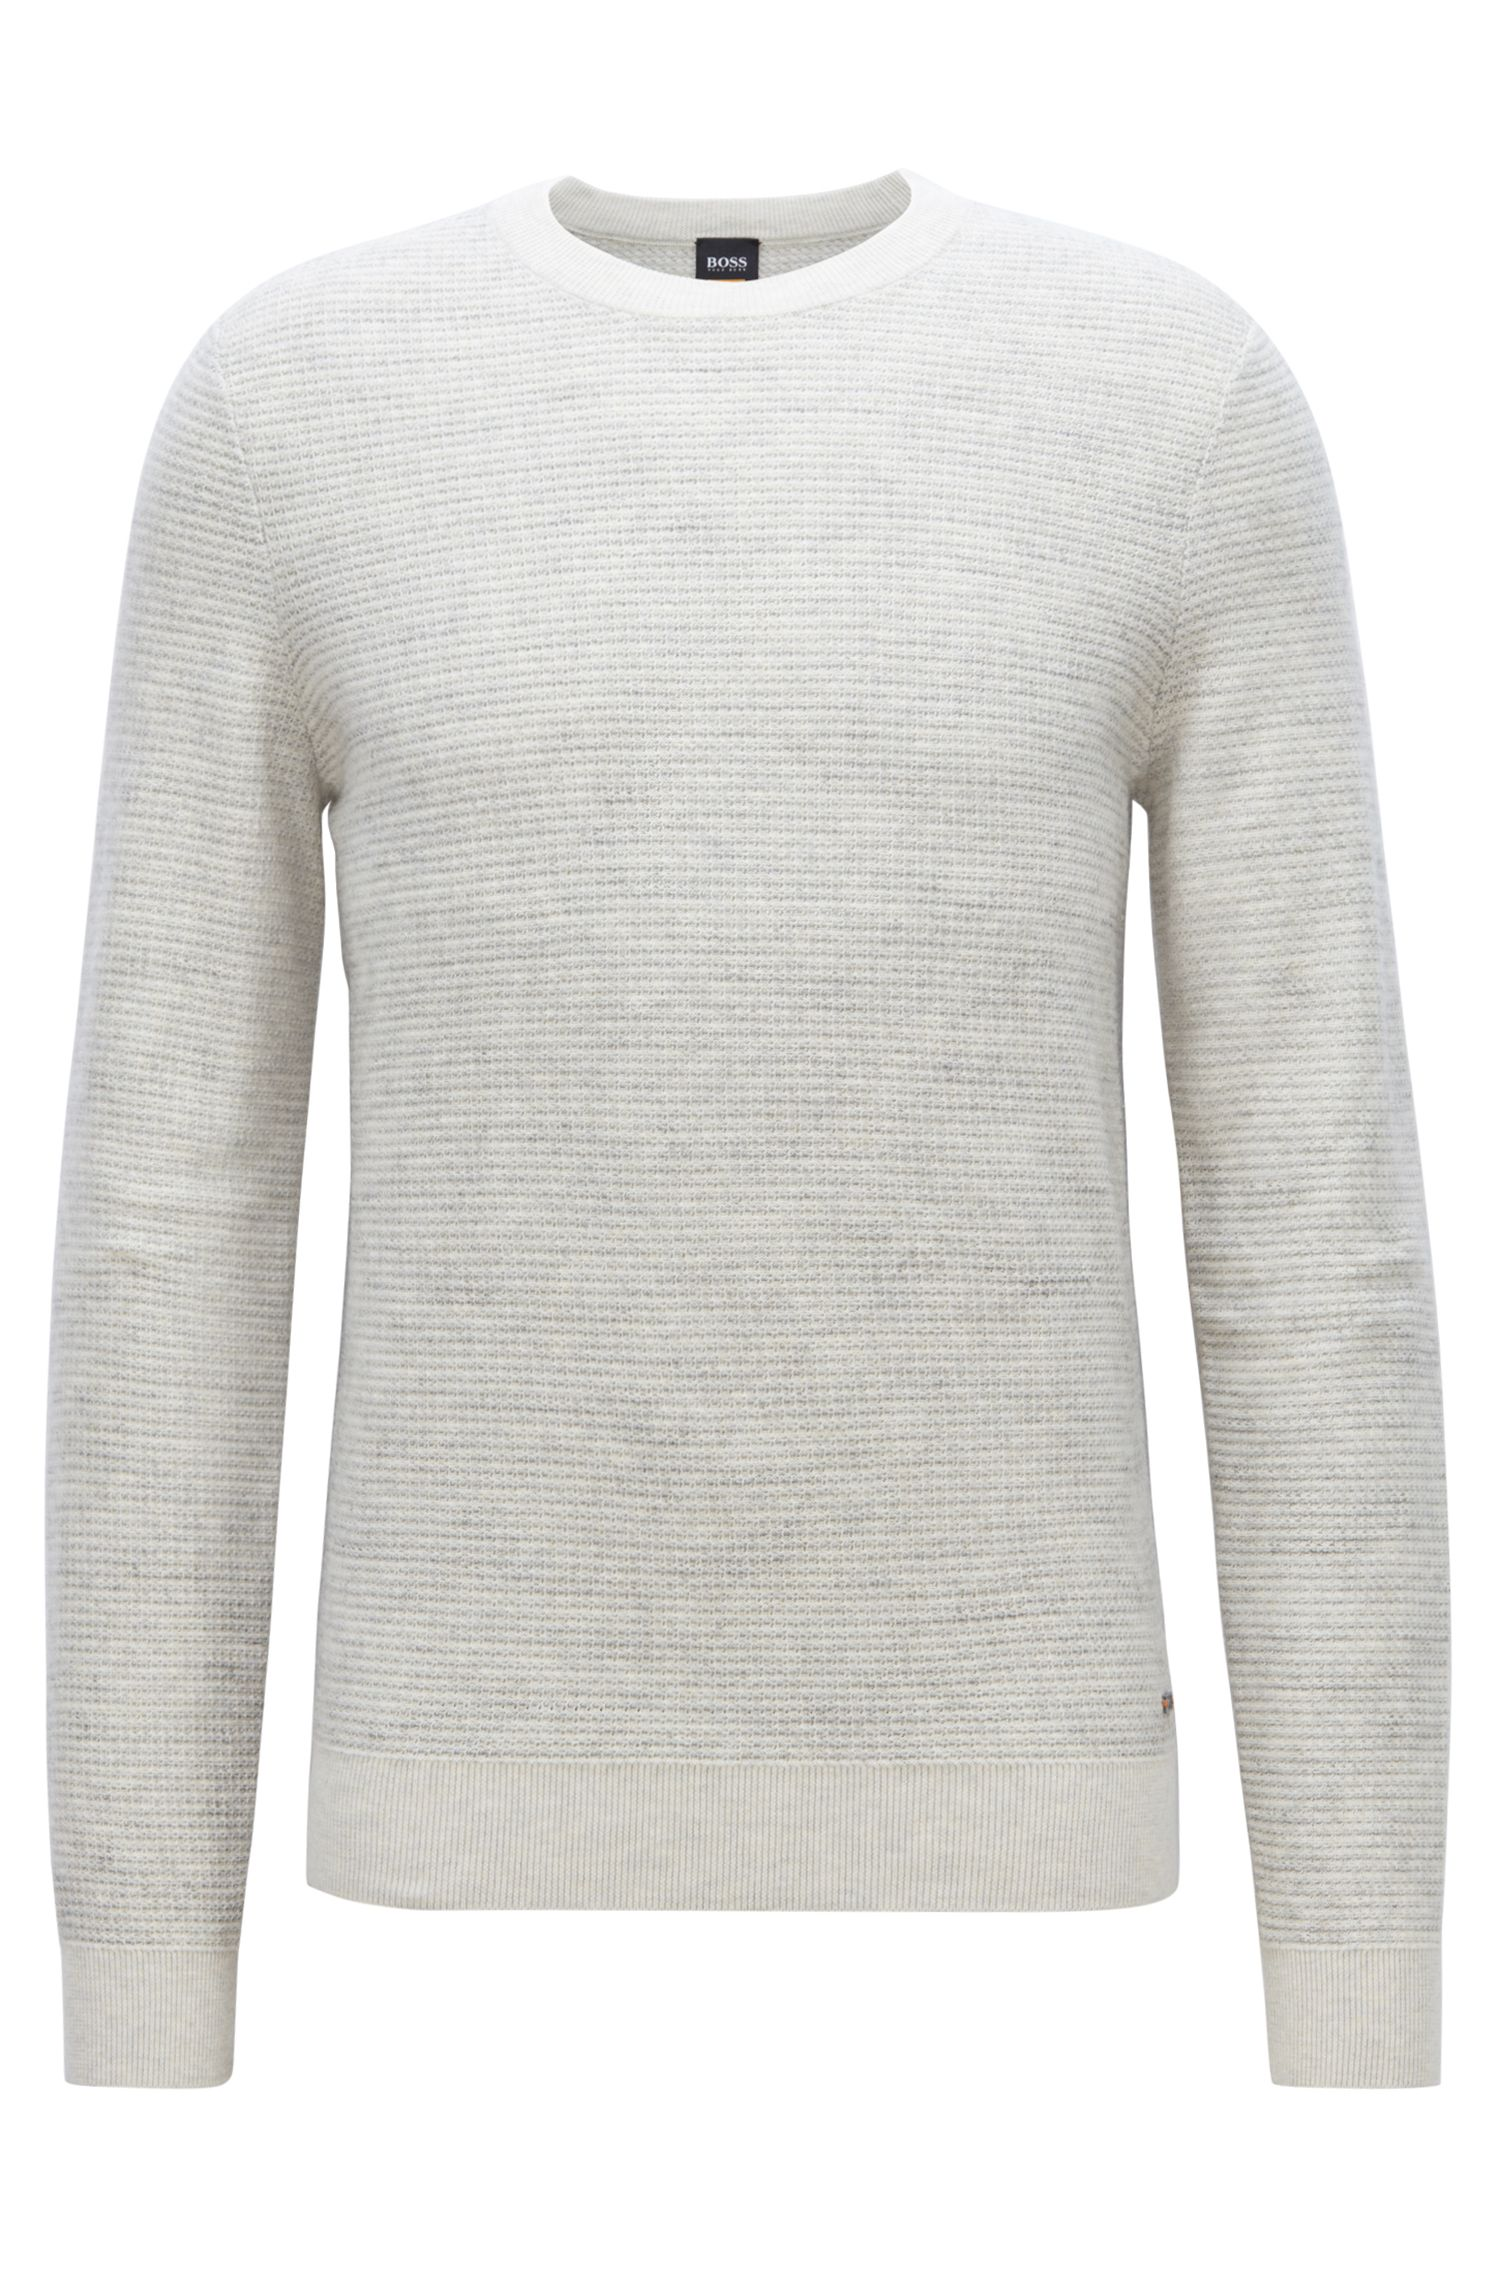 Float-jacquard sweater in a lightweight cotton blend, Light Beige